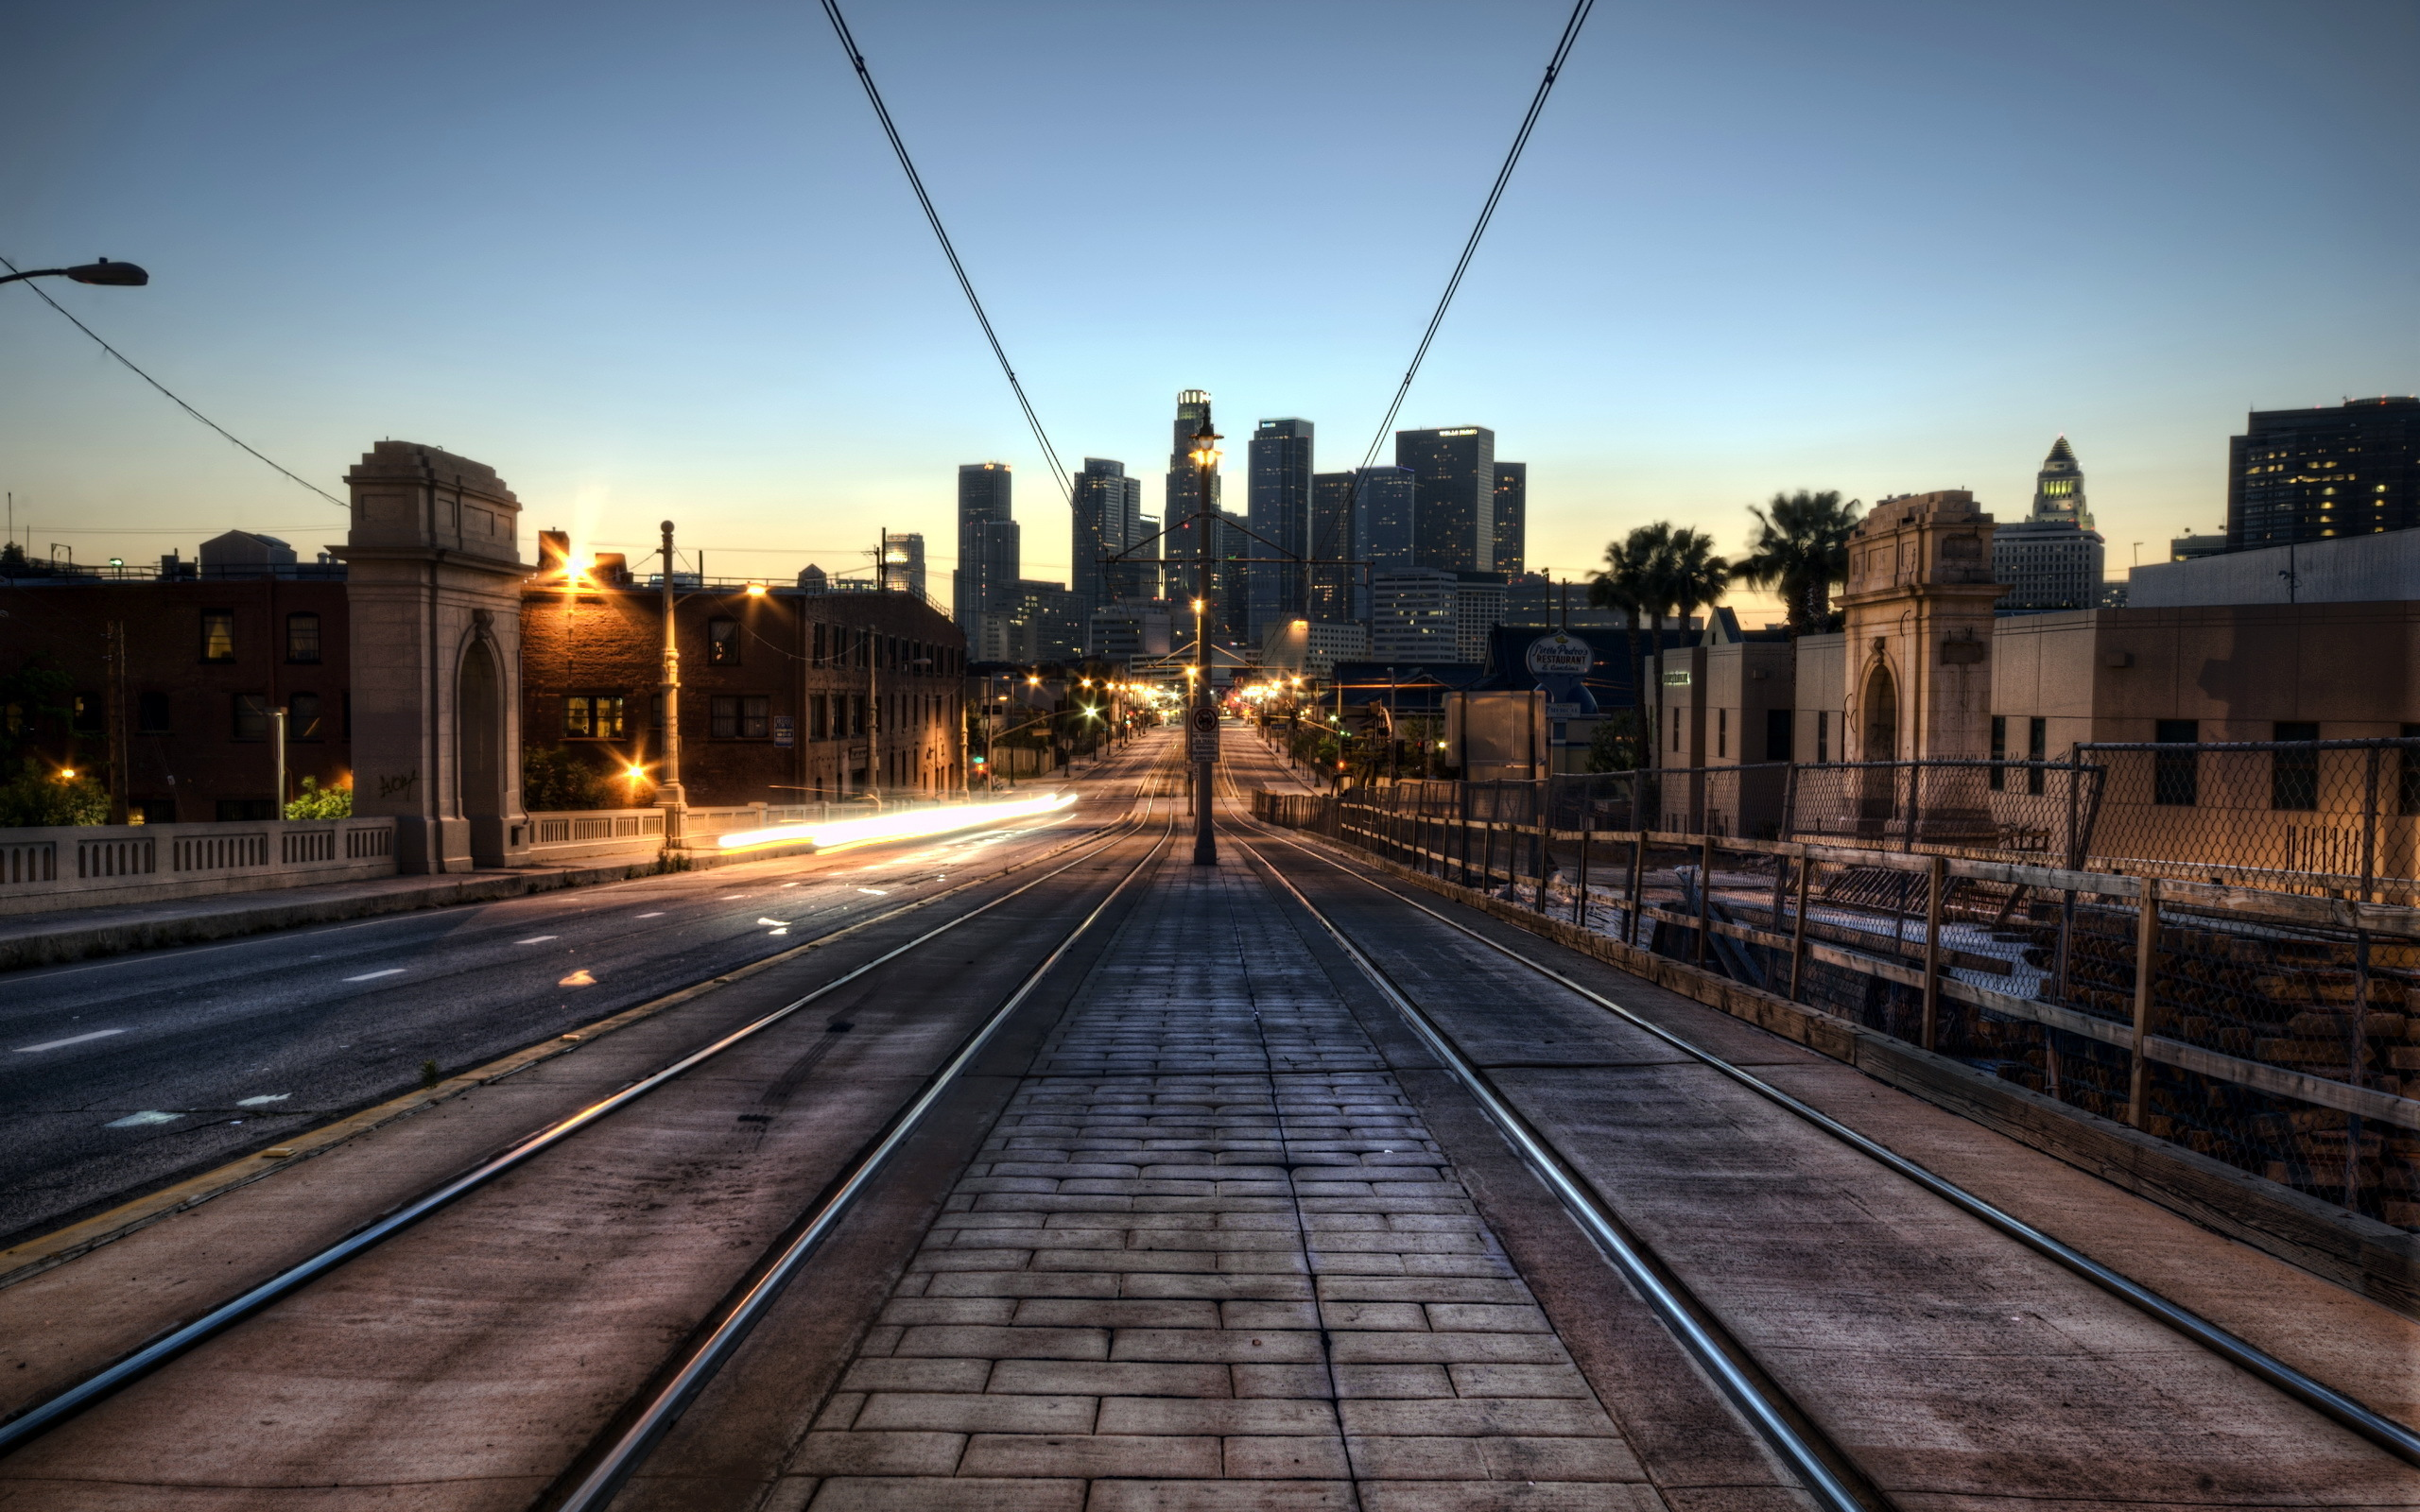 Railway Los Angeles